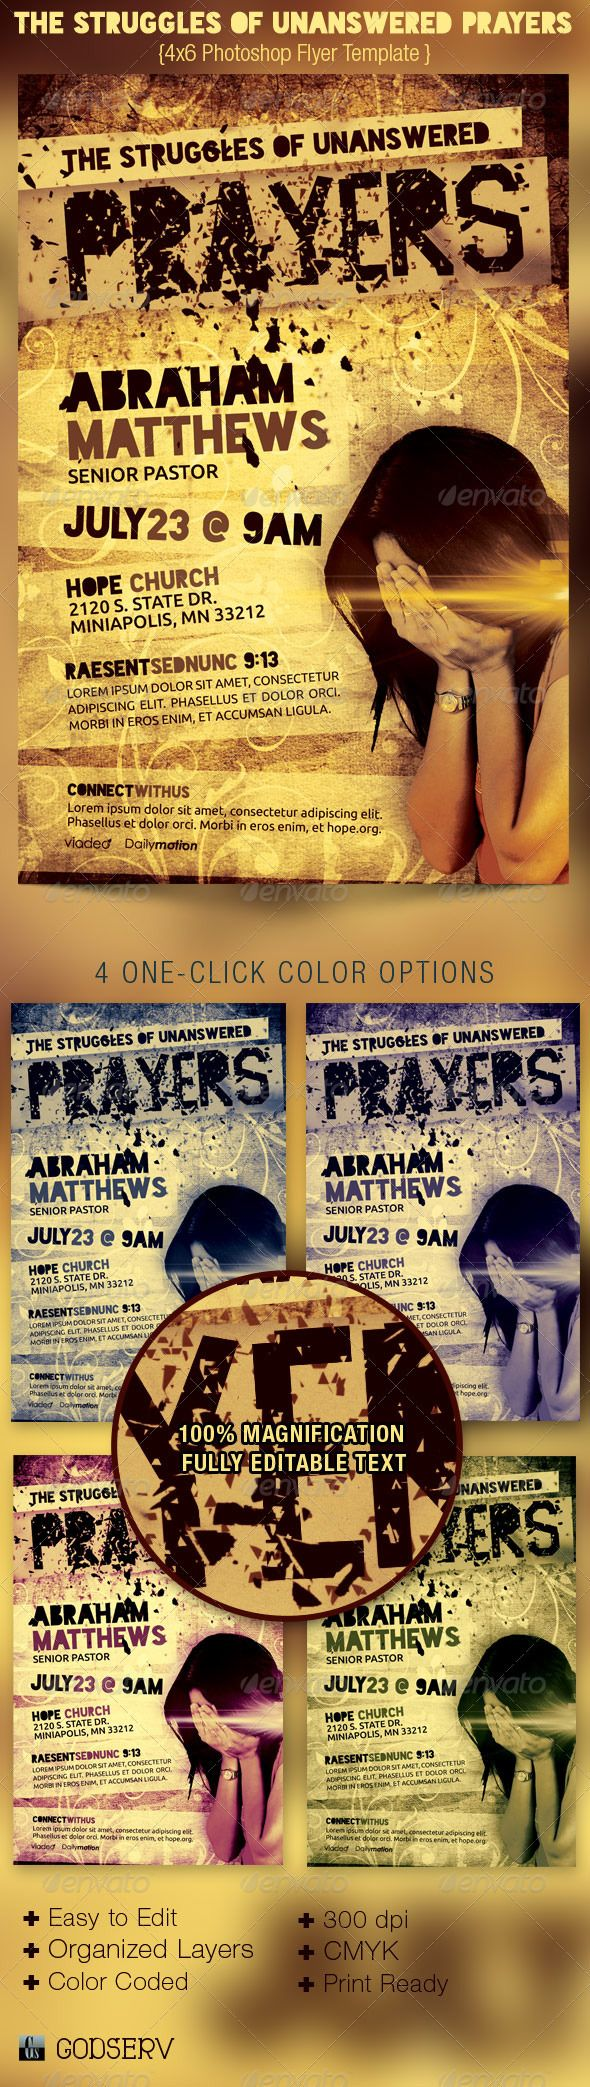 research study flyer template - 20 best church flyers images on pinterest flyer template